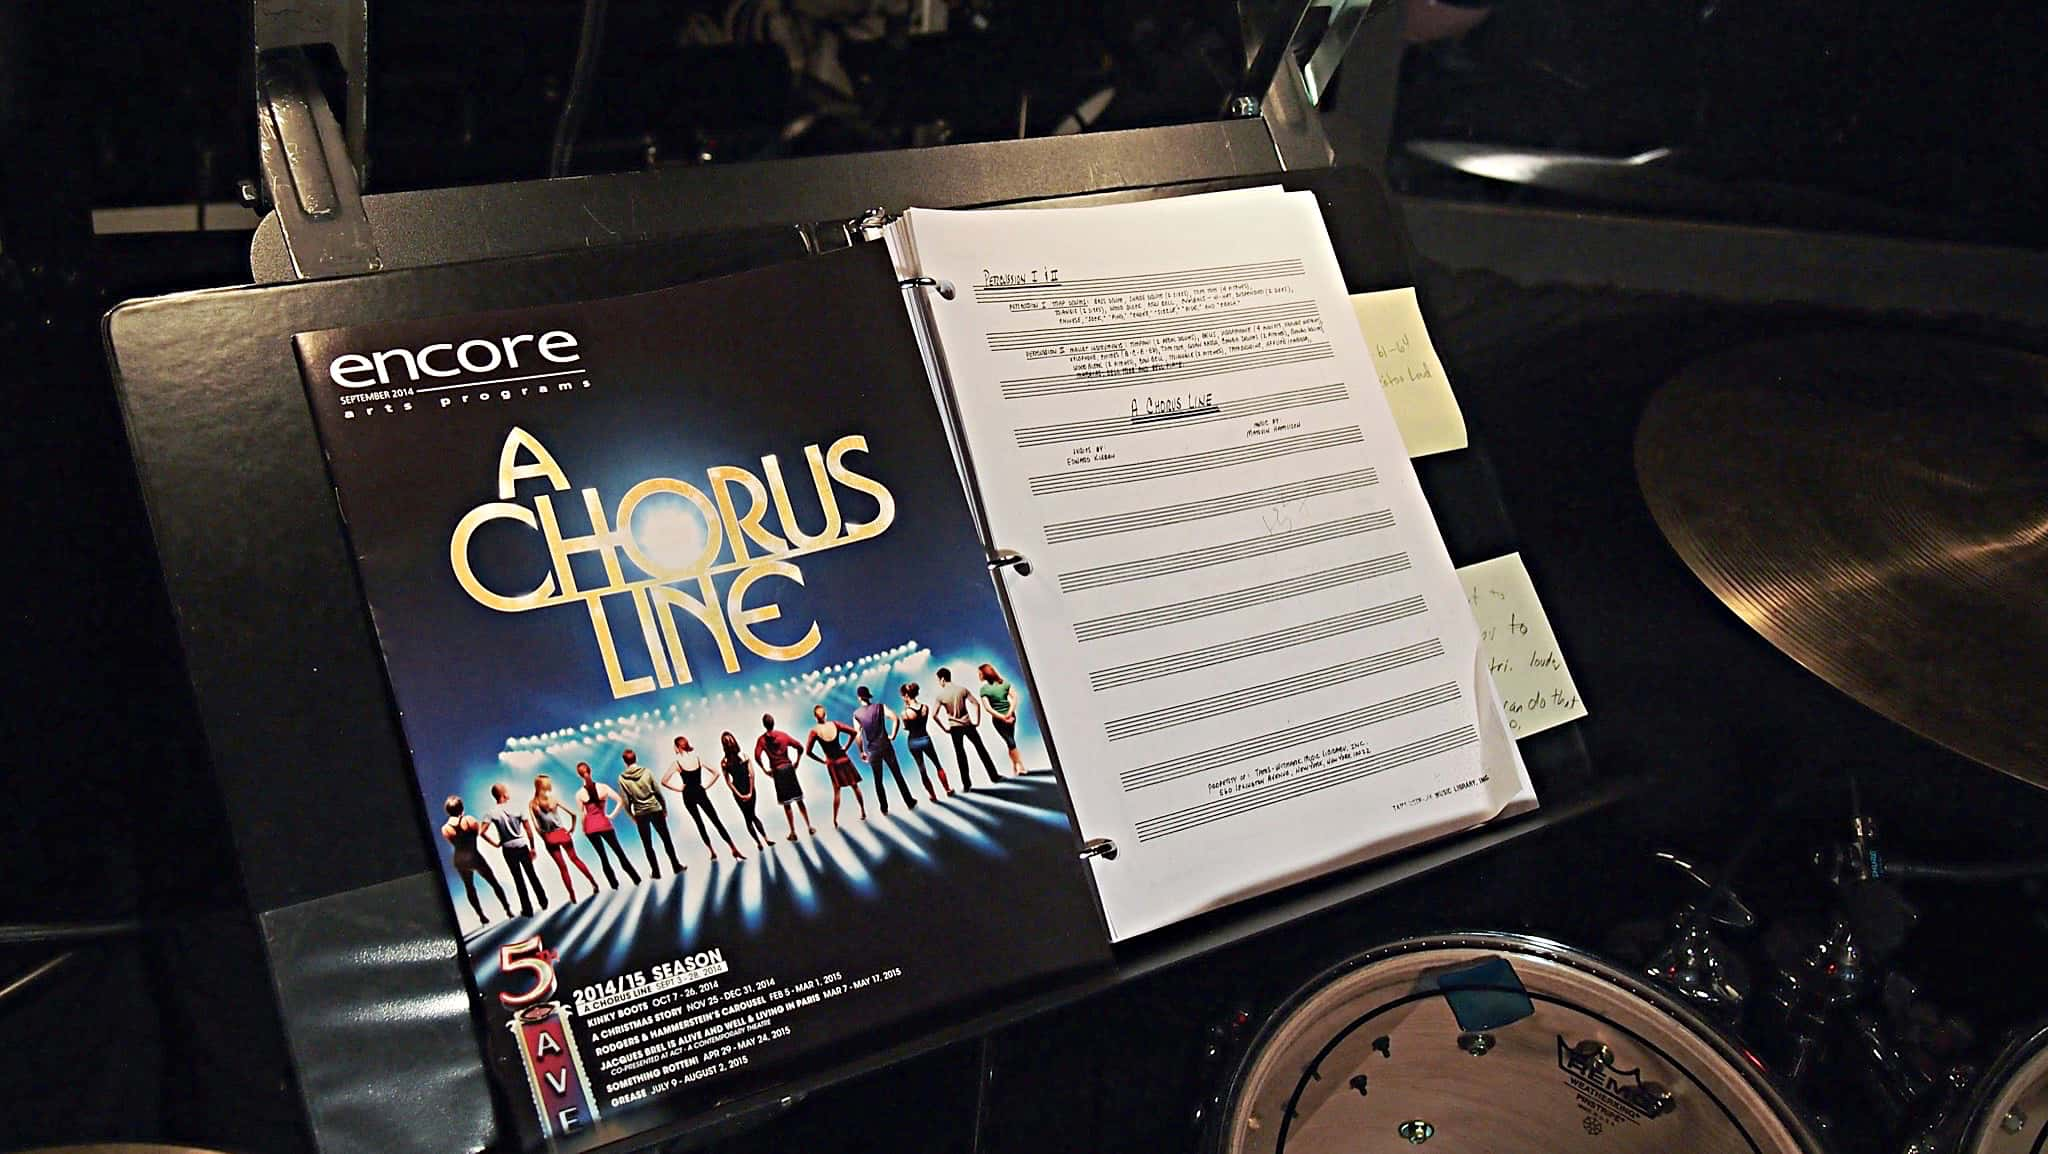 Alec Wilmart's drum set setup for A Chorus Line at The 5th Avenue Theatre in Seattle, Washington.